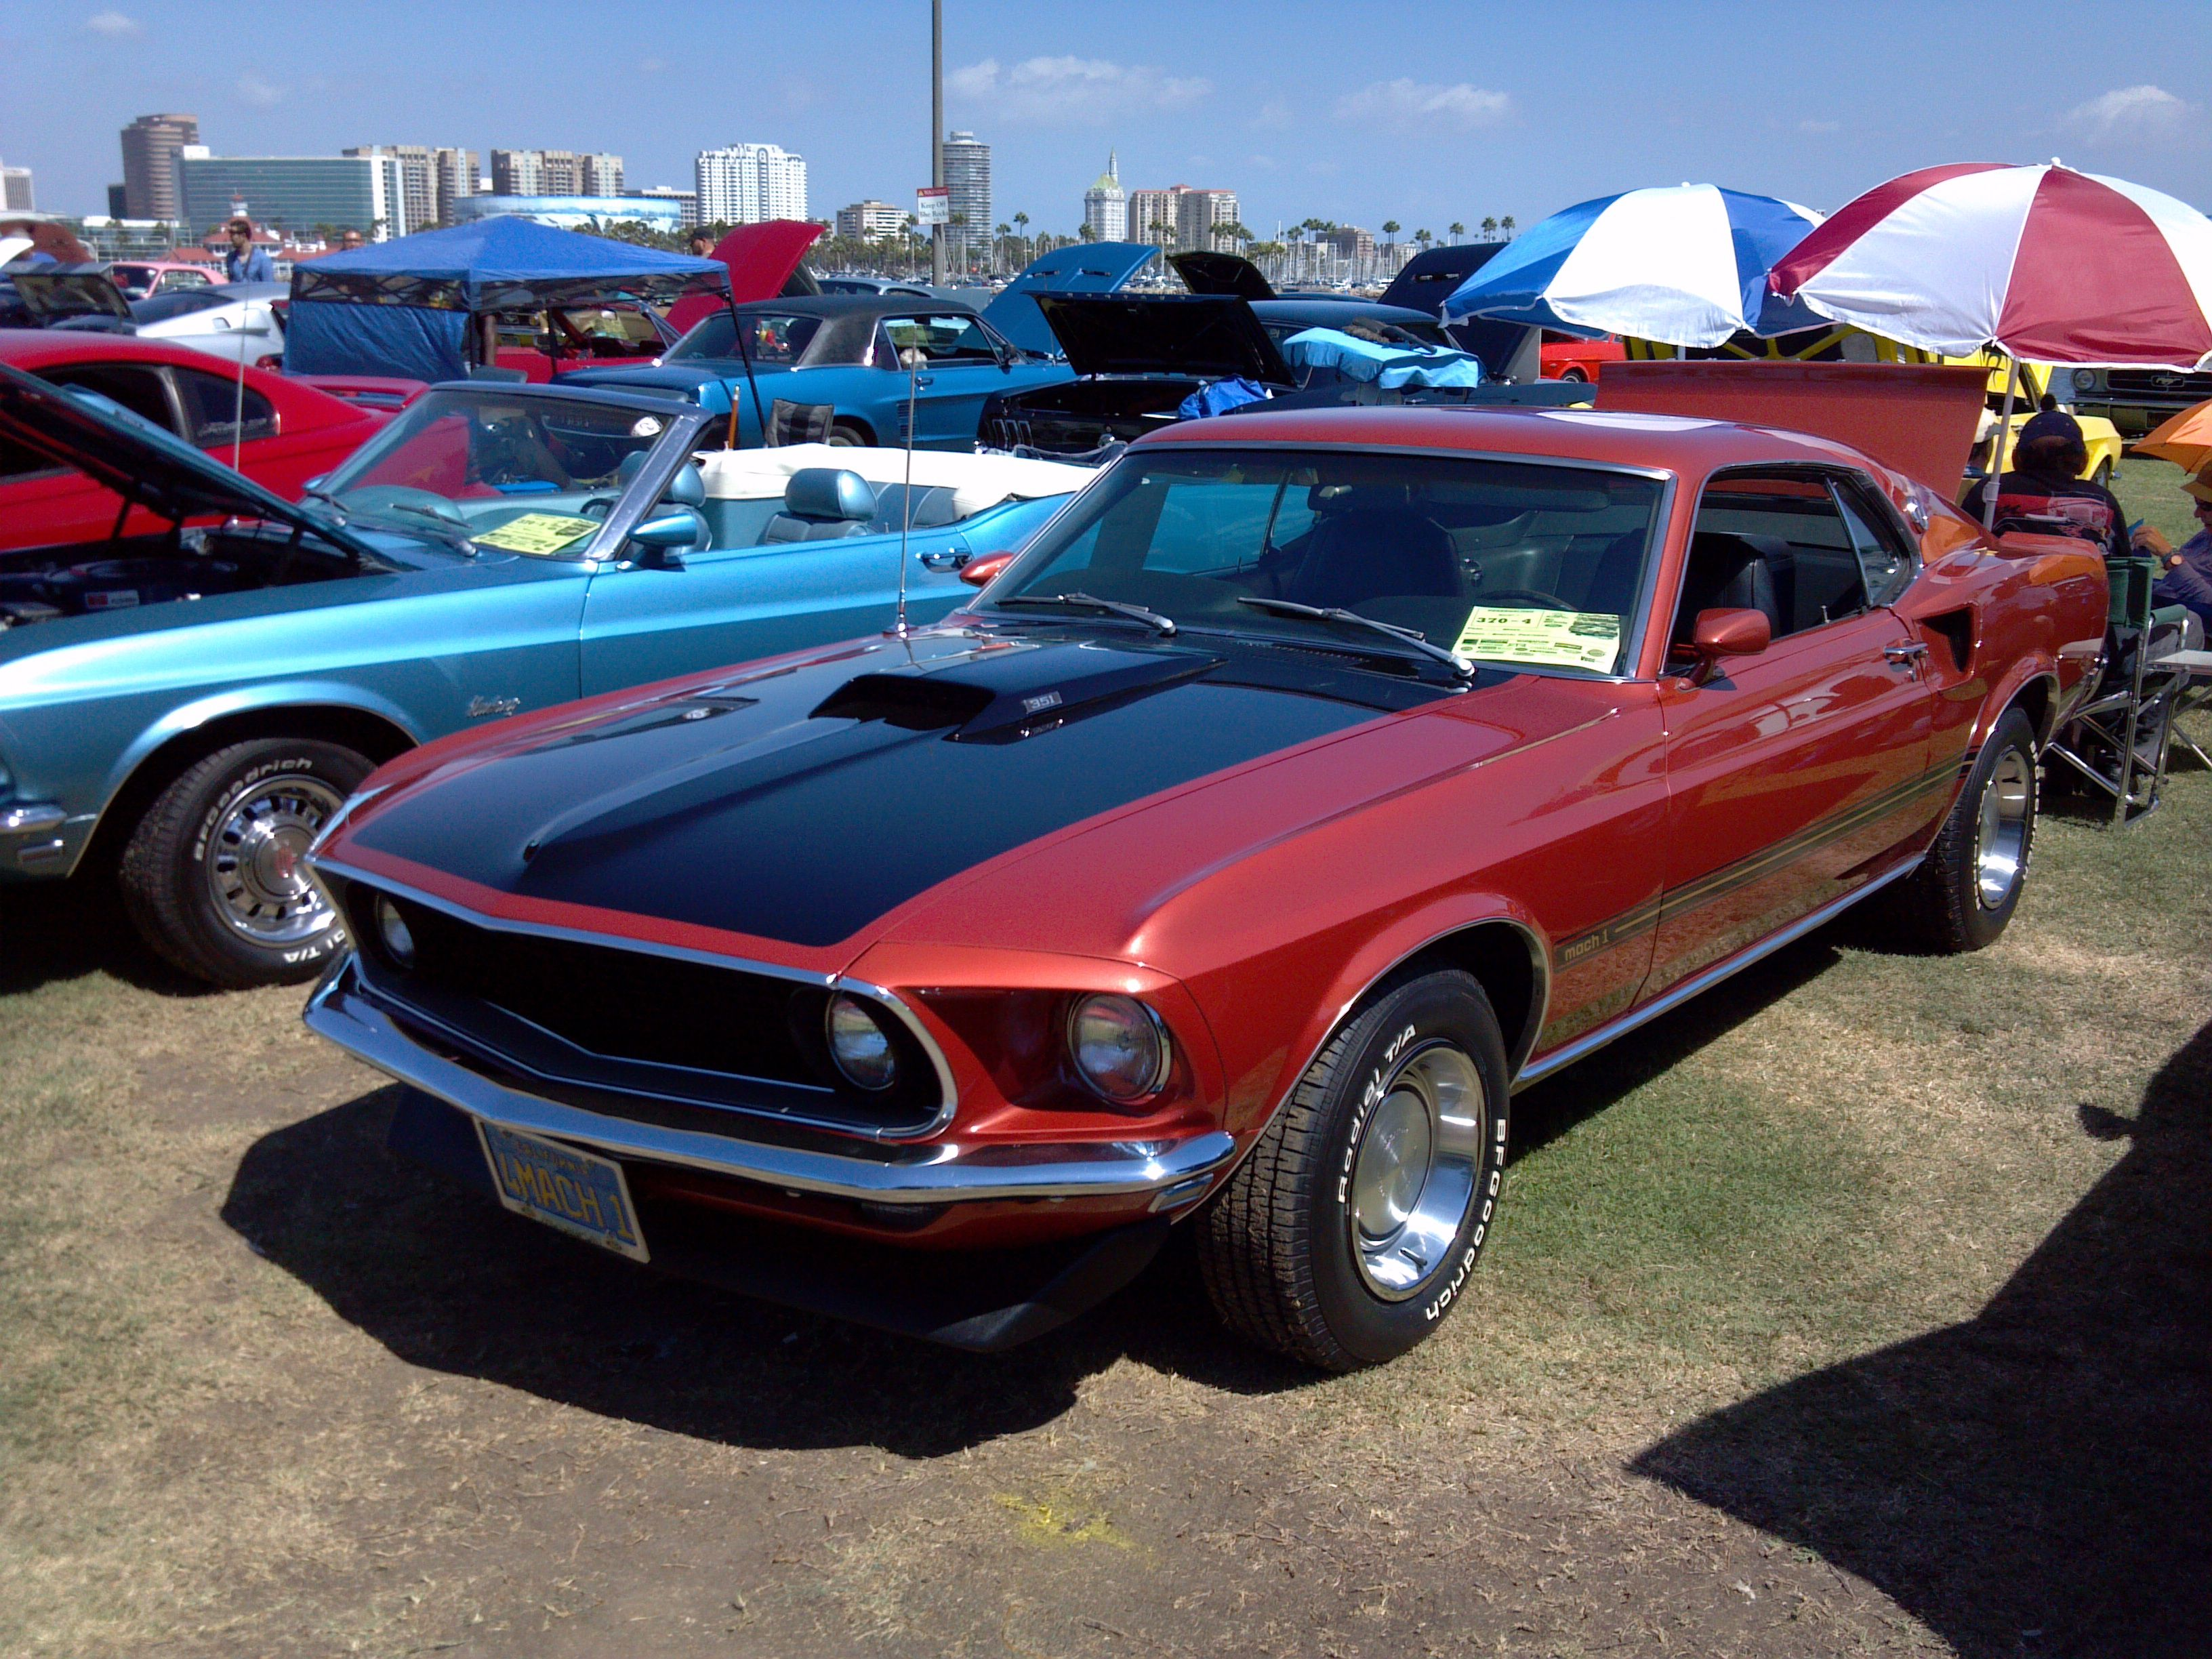 1969 Mach 1 in Indian Fire Red at Long Beach Mustang Show